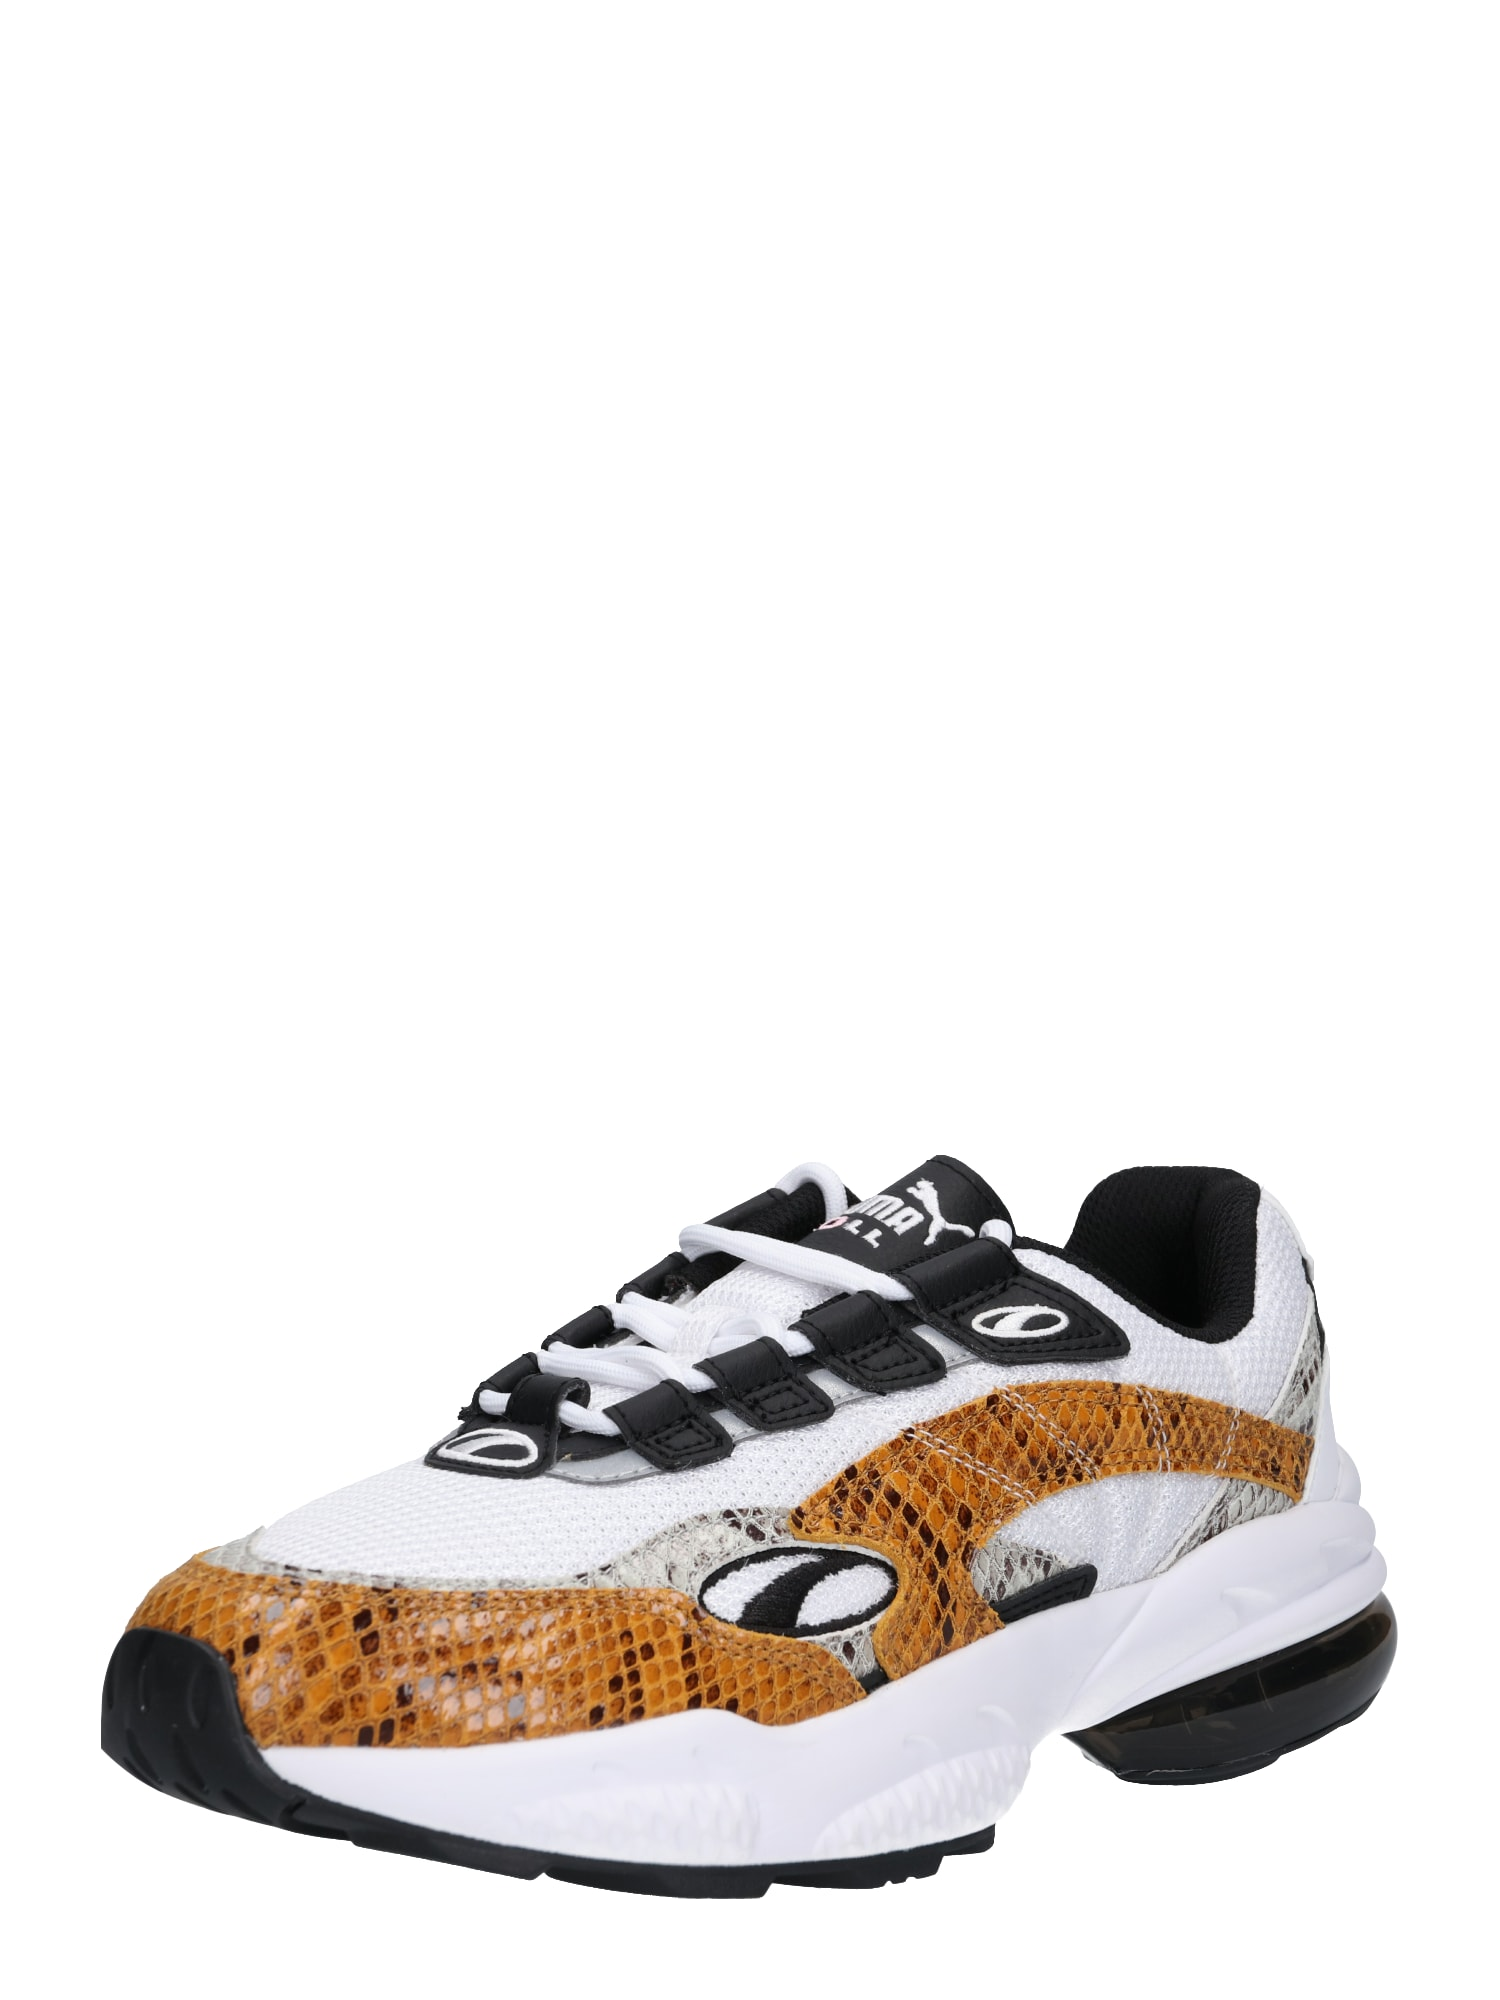 PUMA, Heren Sneakers laag 'Cell Venom Animal', bruin / wit